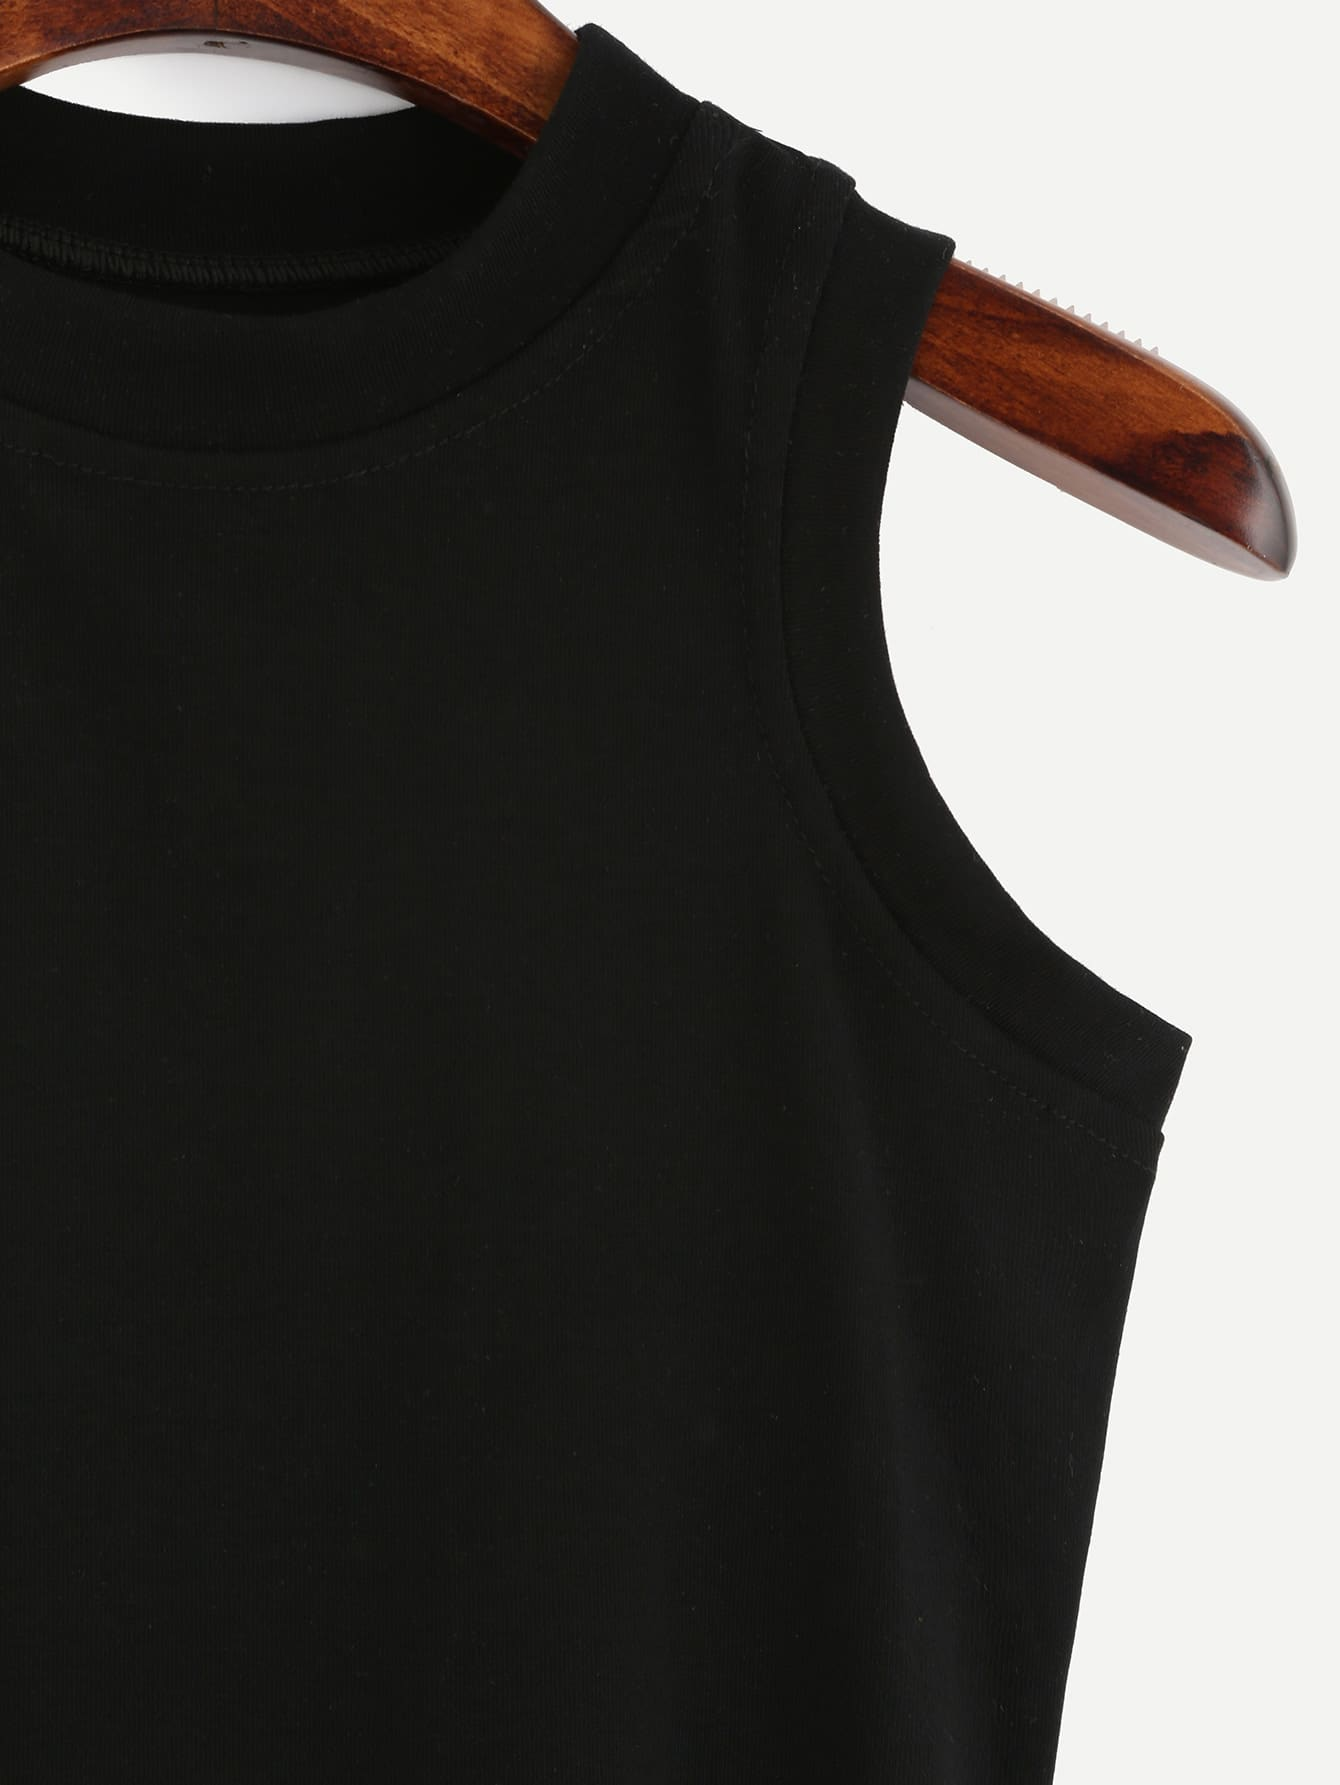 Black Round Neck Tank Top